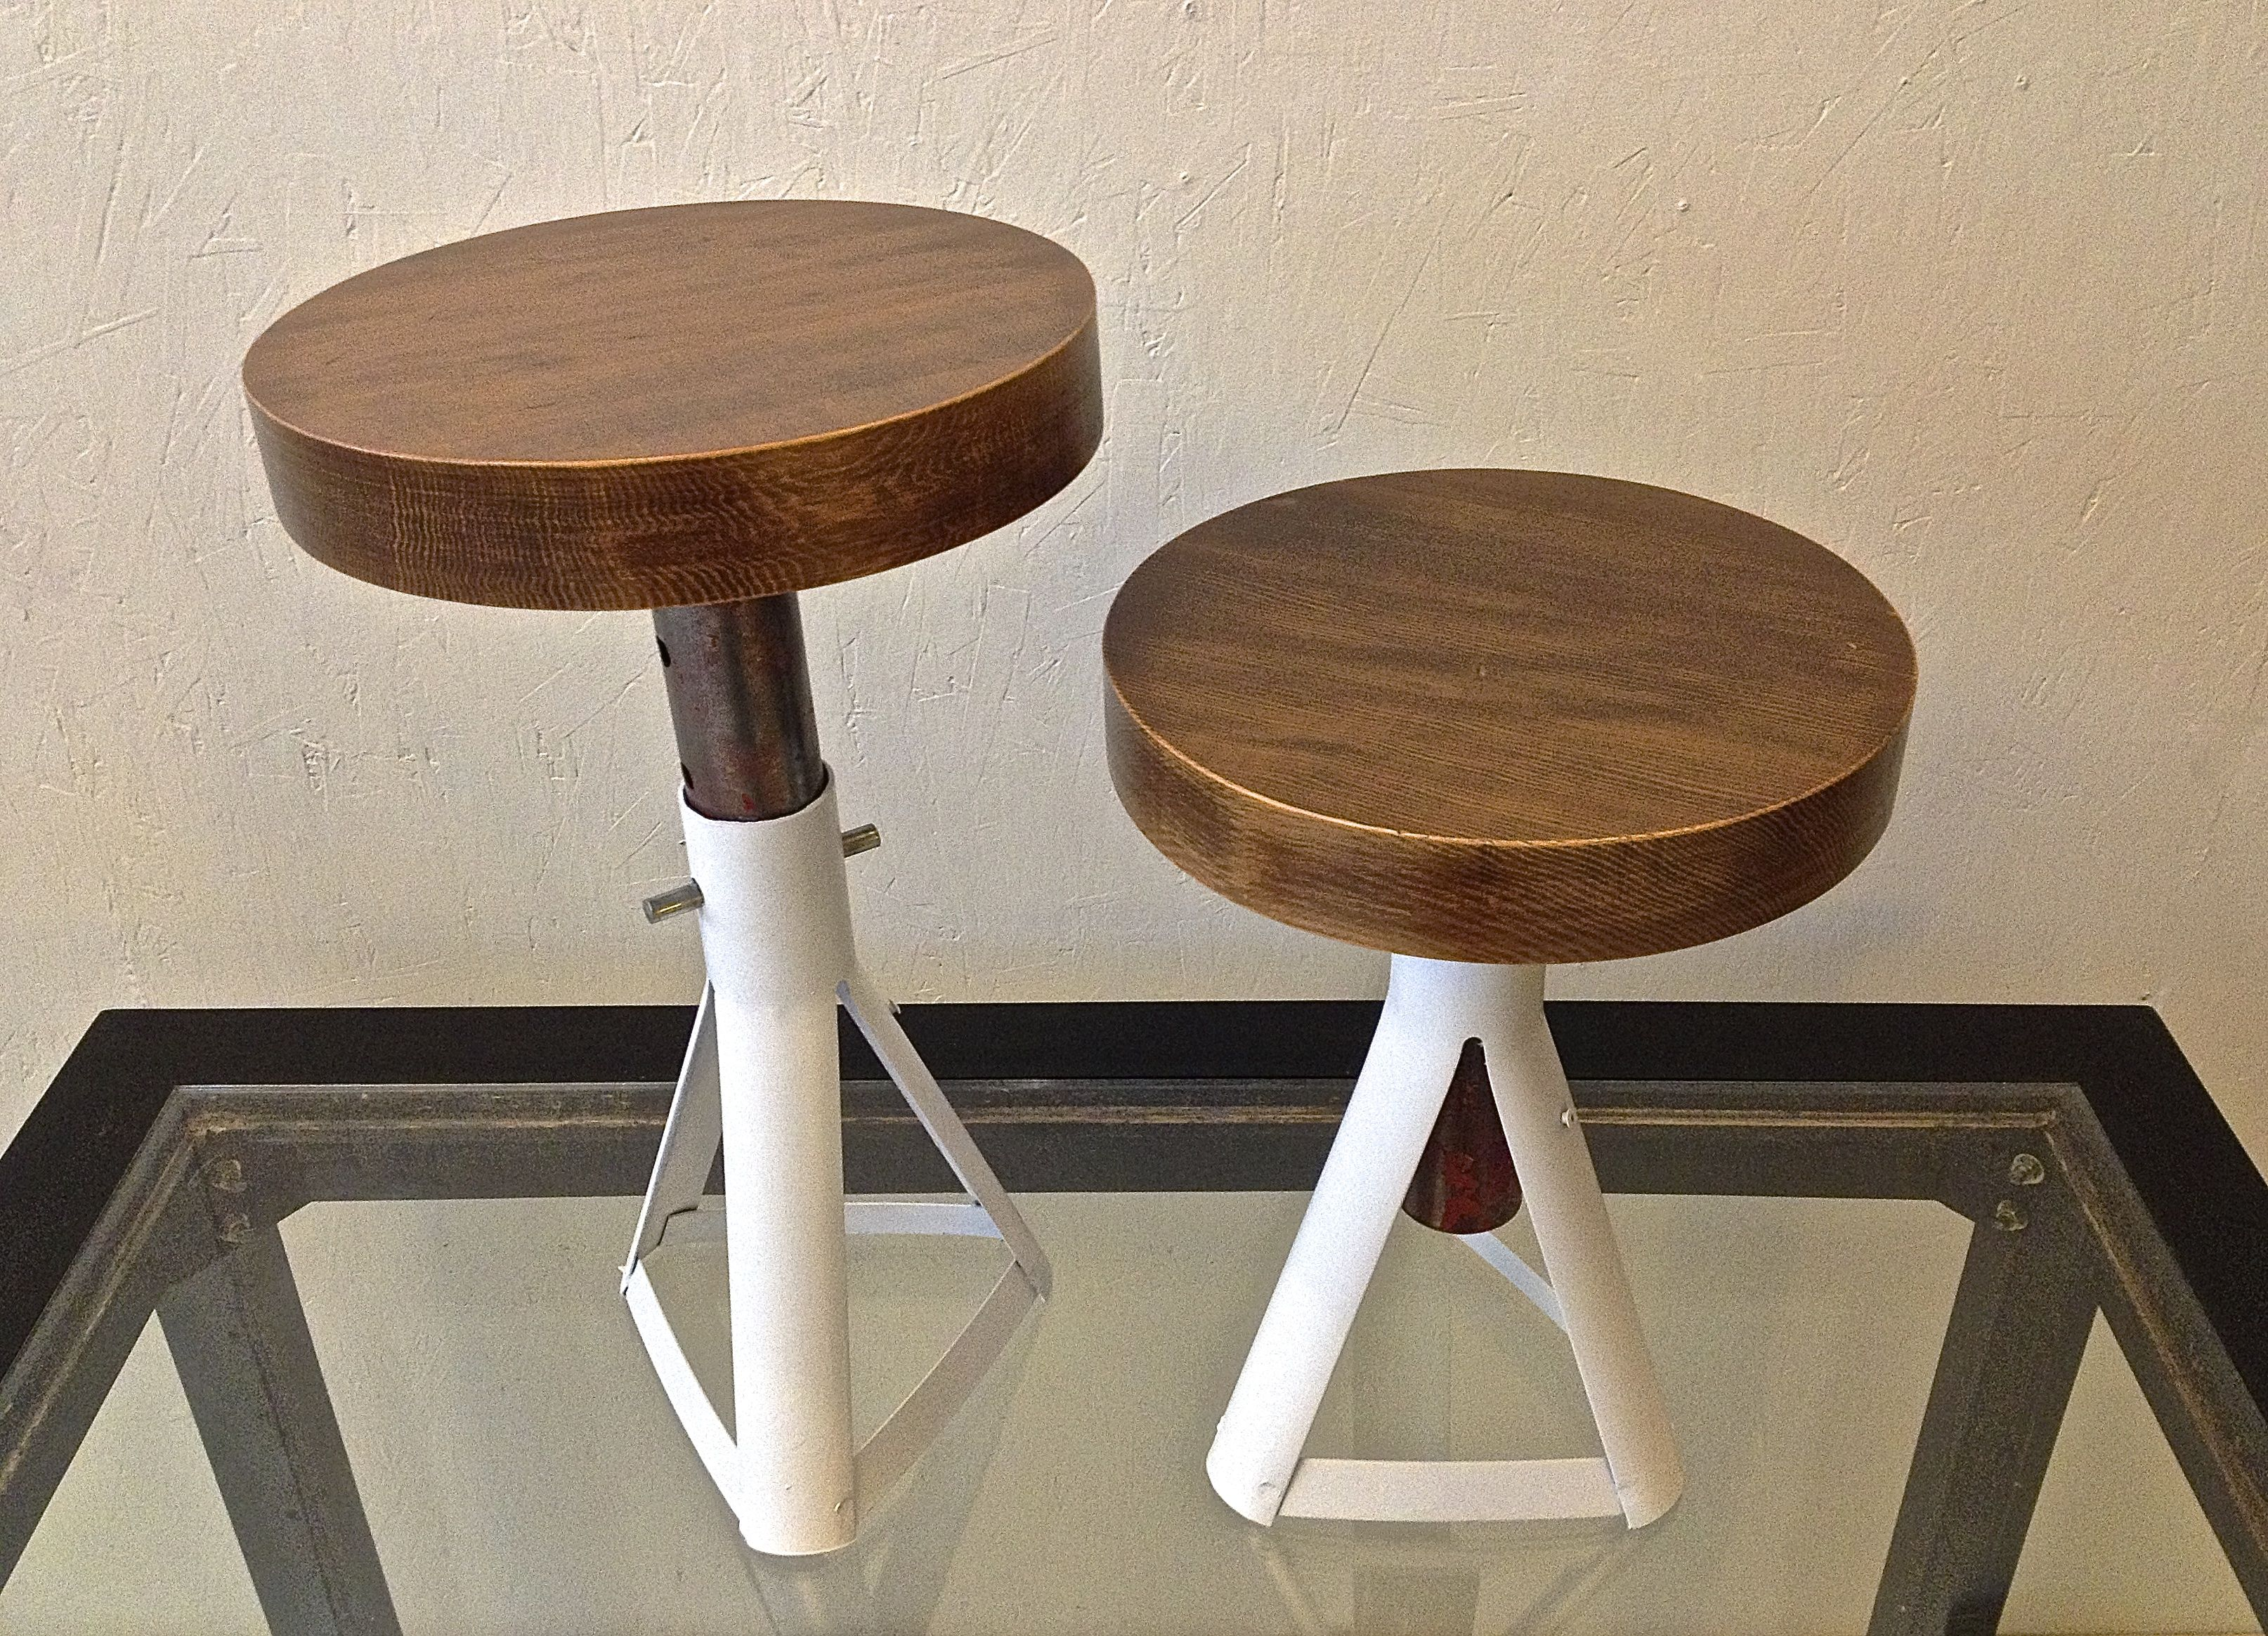 Repurposed car jack stands as stools with various wood tops